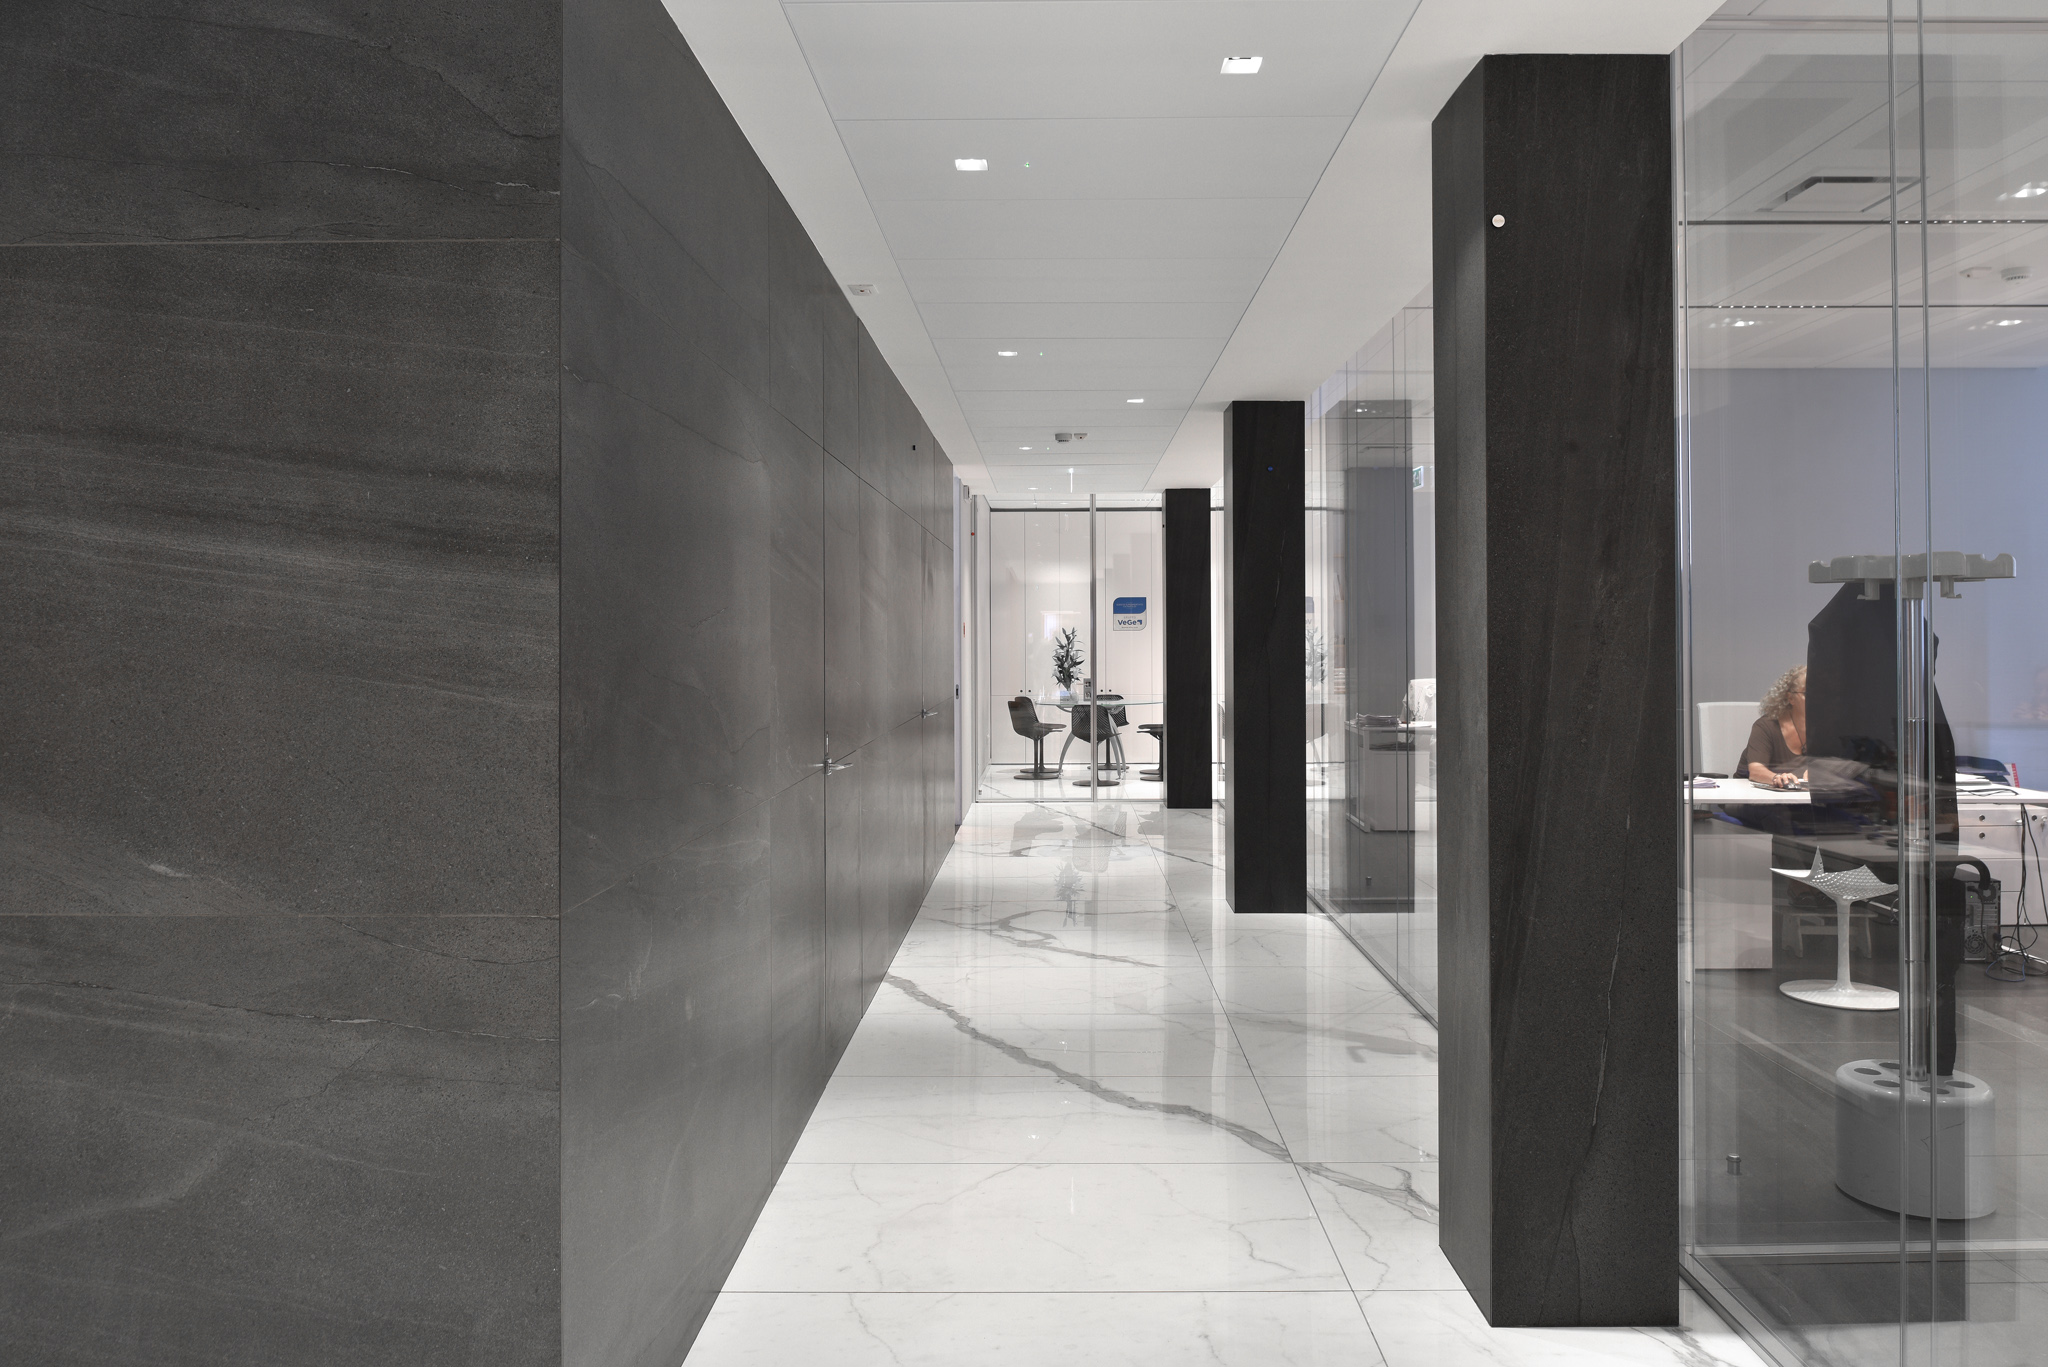 porcelain tile images: Basalt Stone range high quality photo